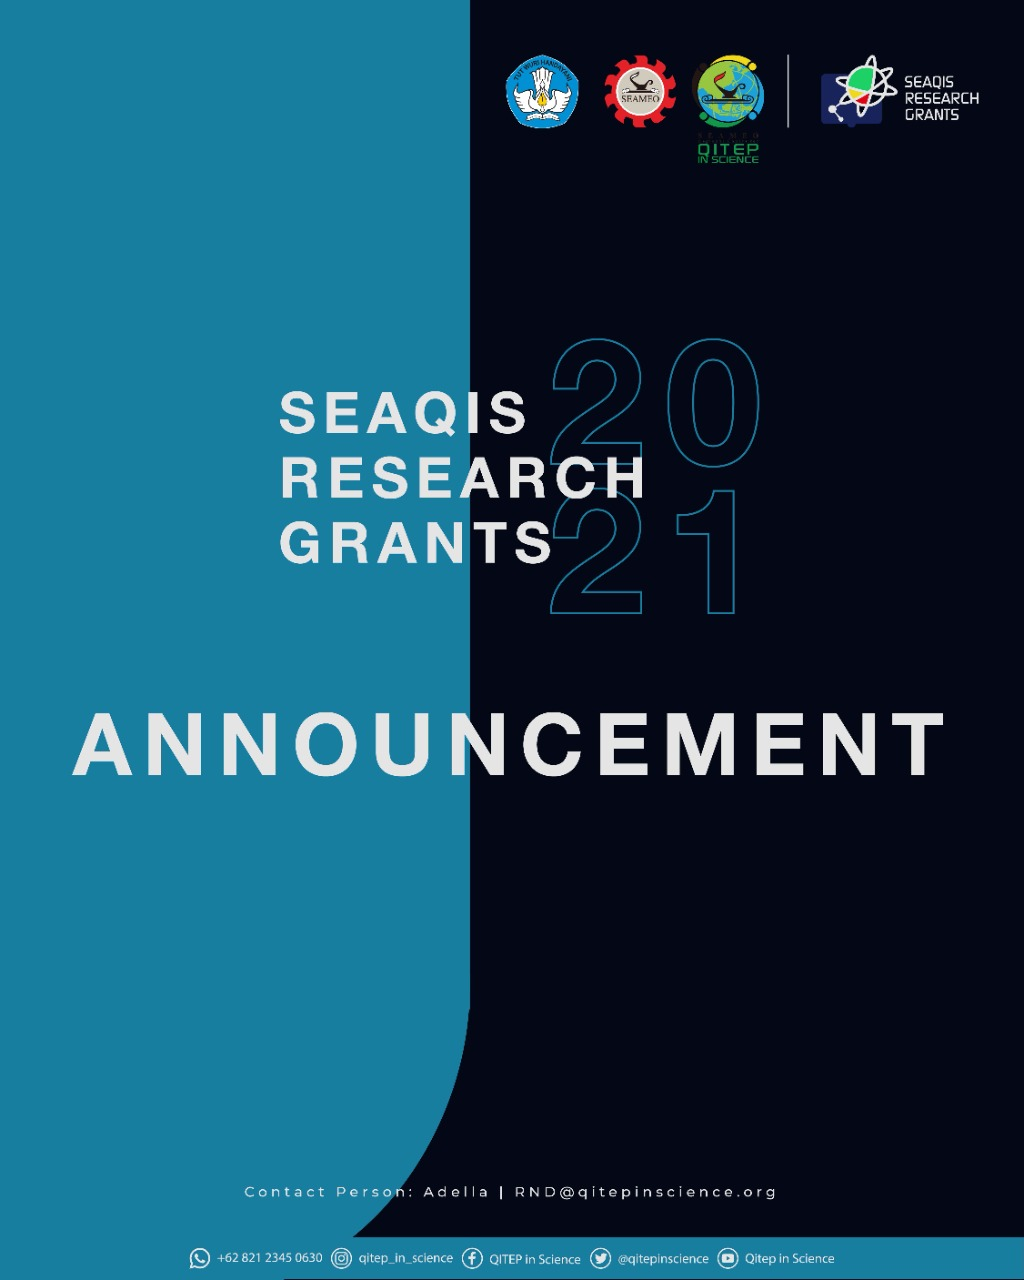 ANNOUNCEMENT SEAQIS RESEARCH GRANTS 2021